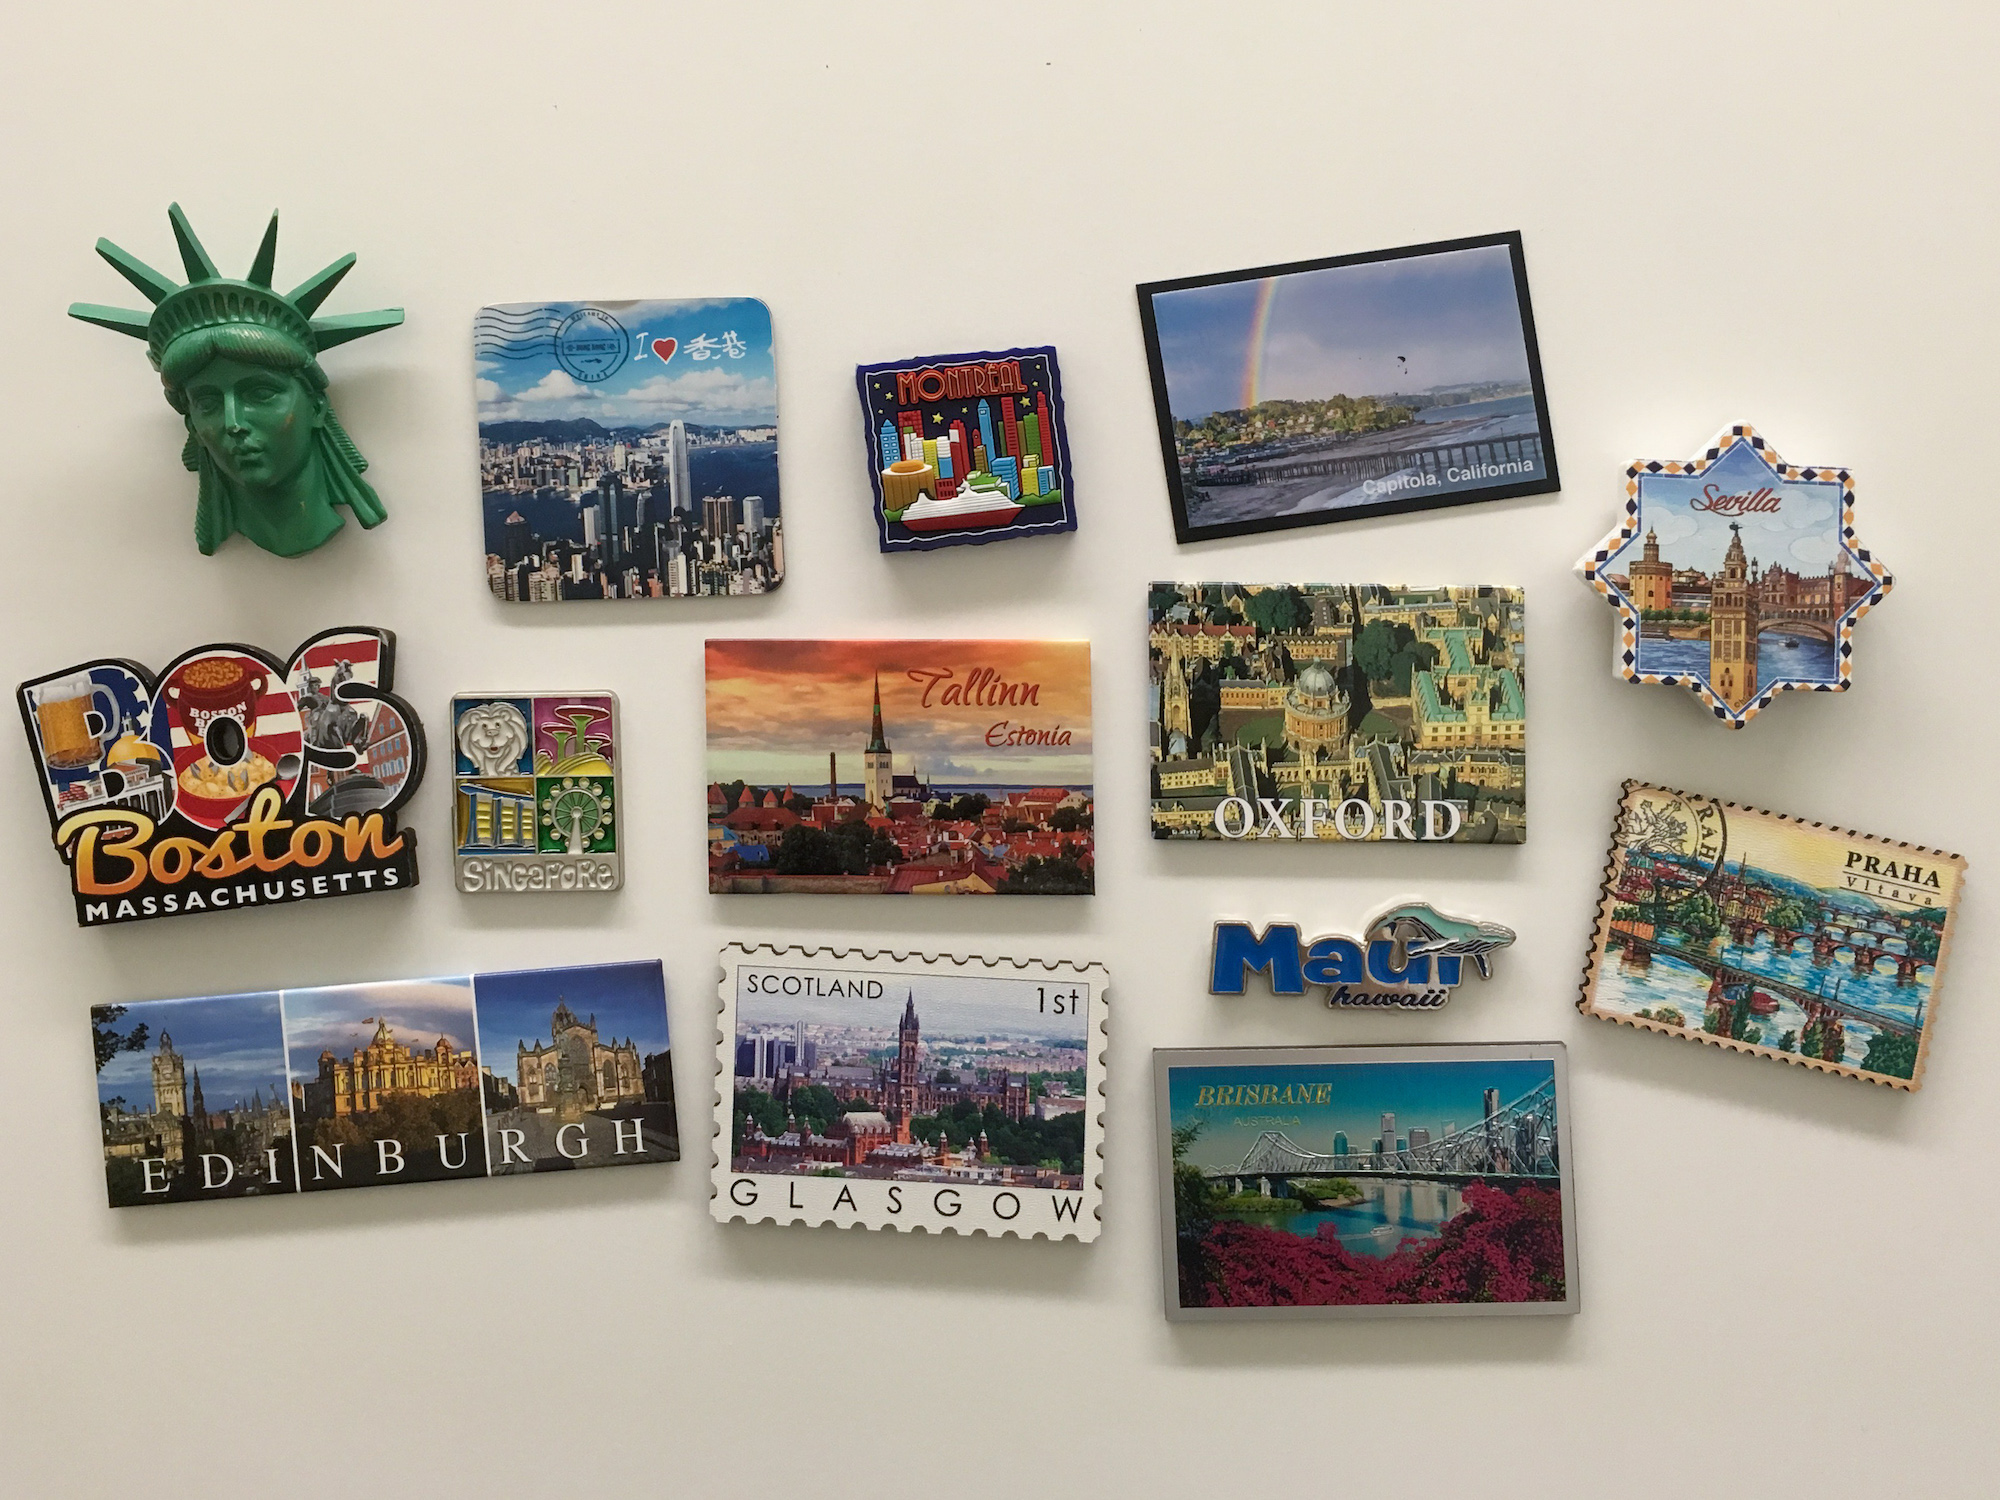 A collection of magnets commemorating different locations.